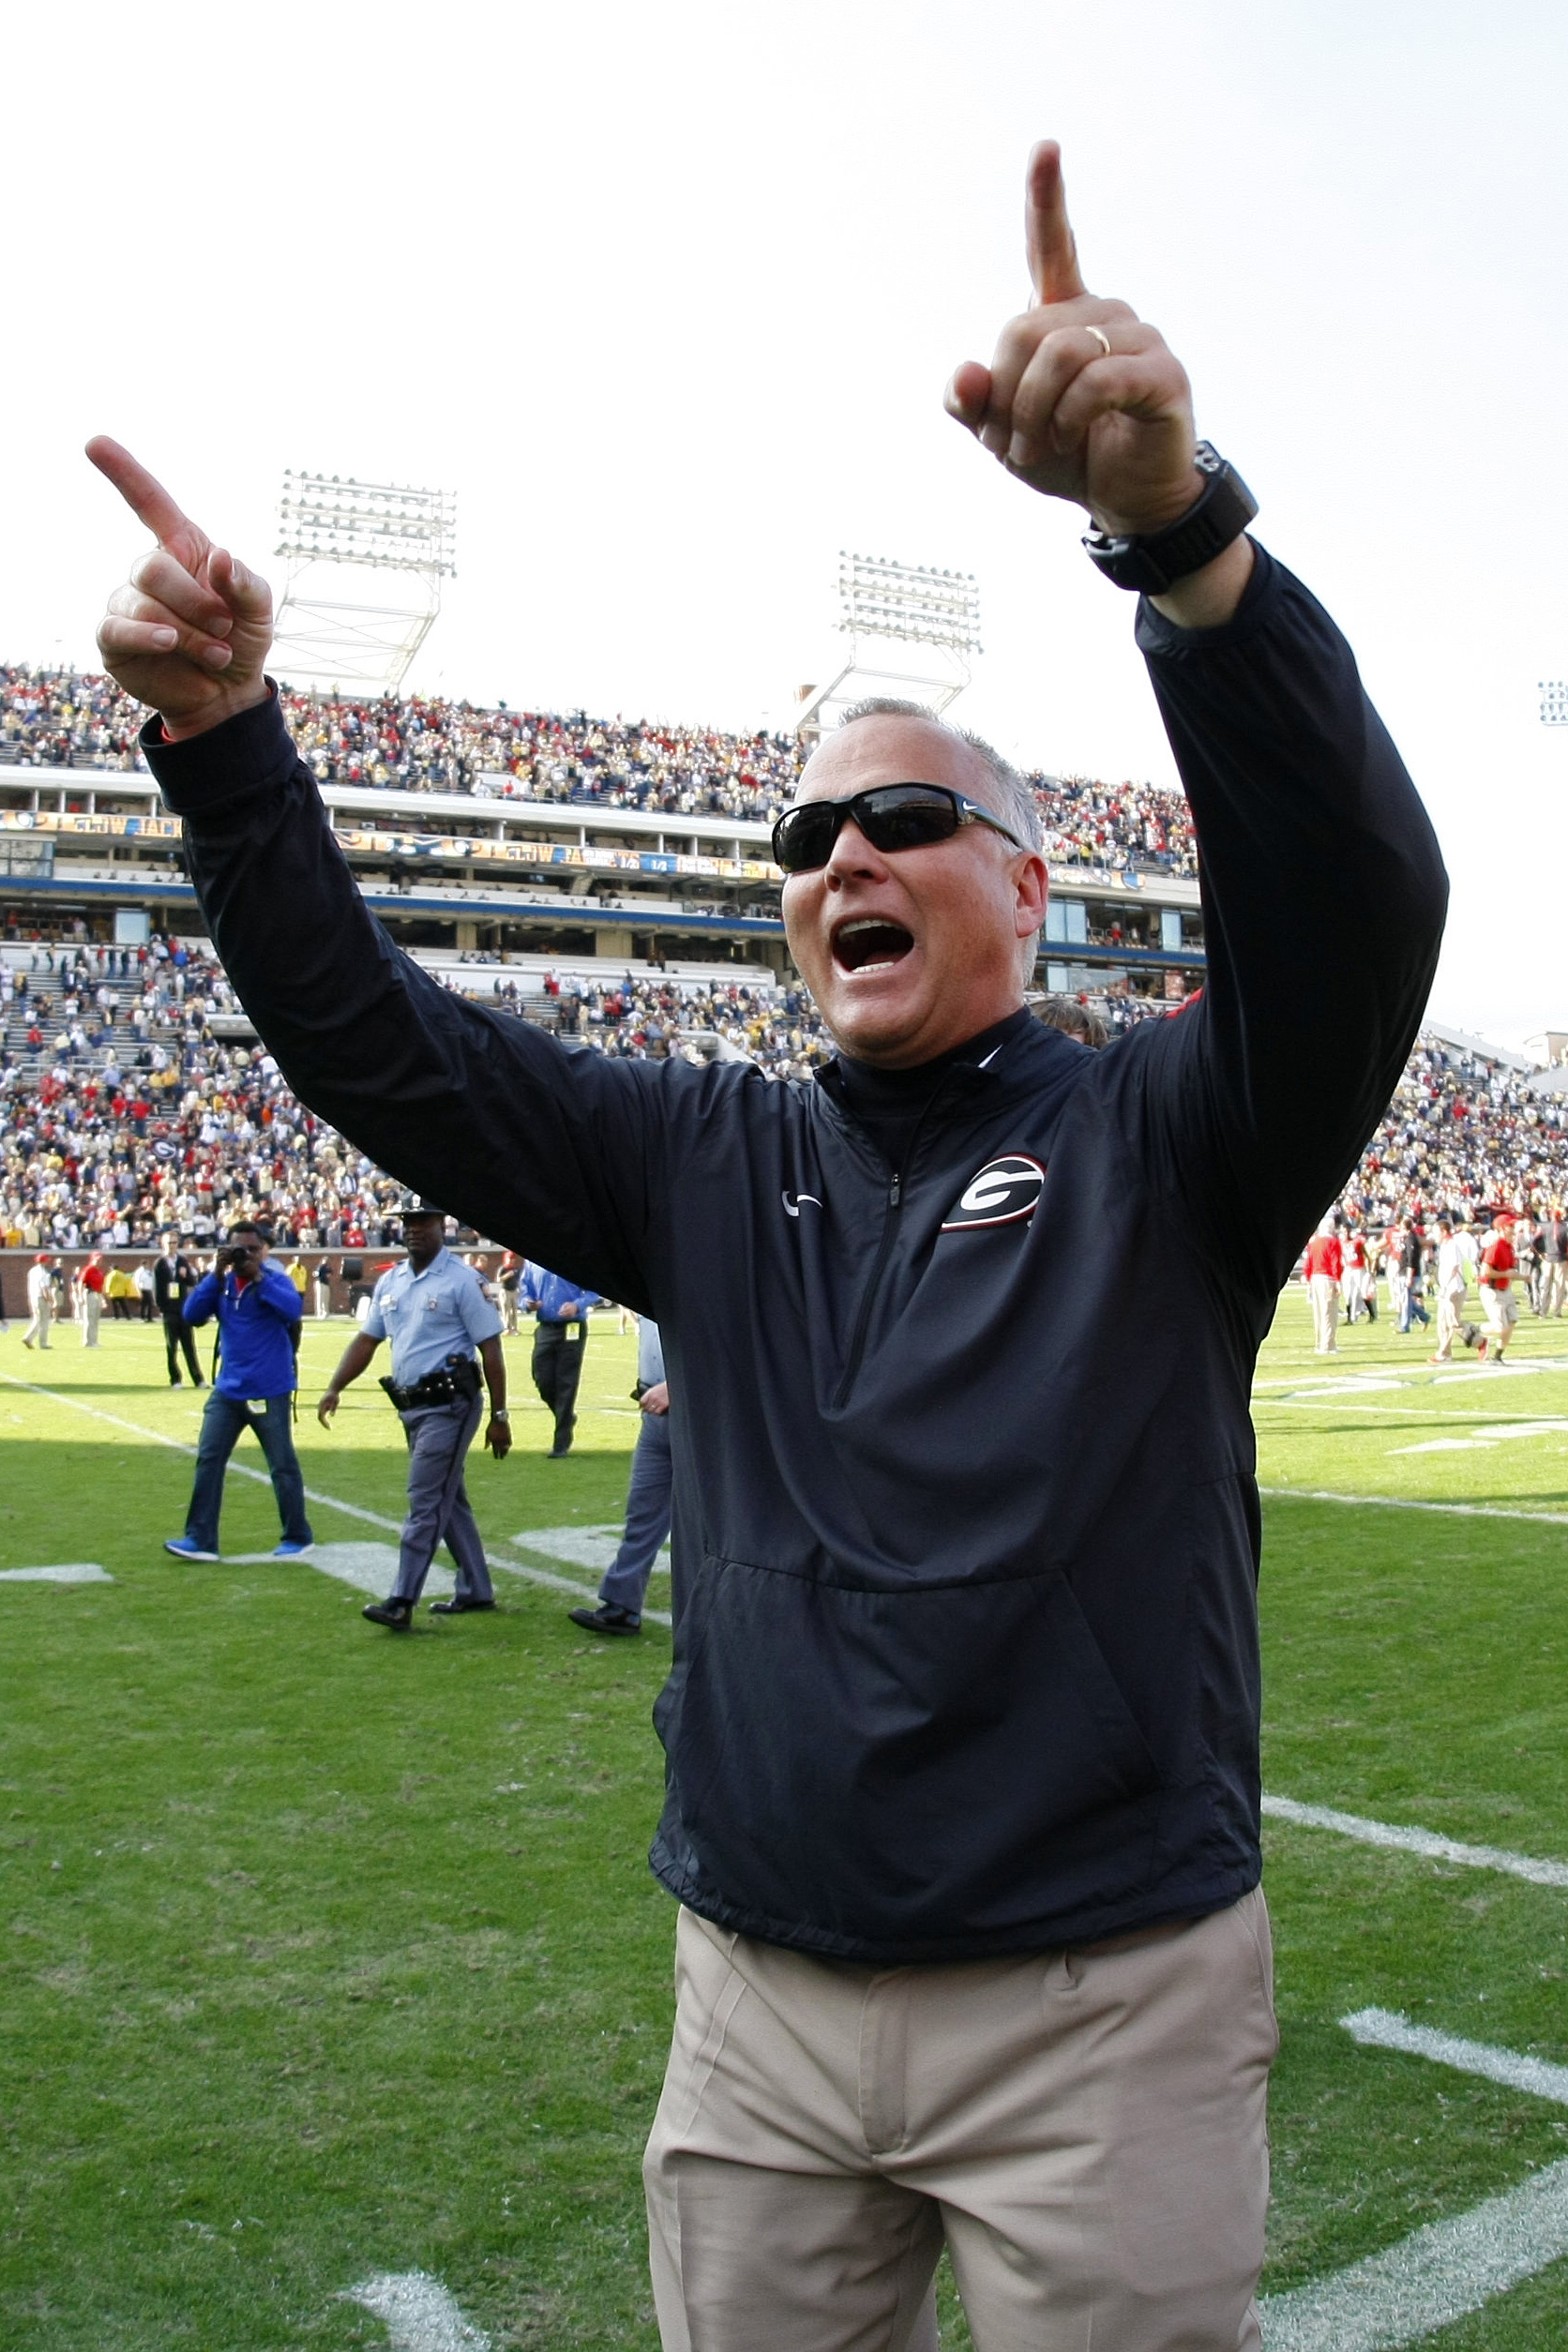 Georgia head coach Mark Richt celebrates as he walks off the field after they defeated Georgia Tech 13-7 in an NCAA college football game Saturday, Nov. 28, 2015, in Atlanta, Ga. (AP Photo/Brett Davis)